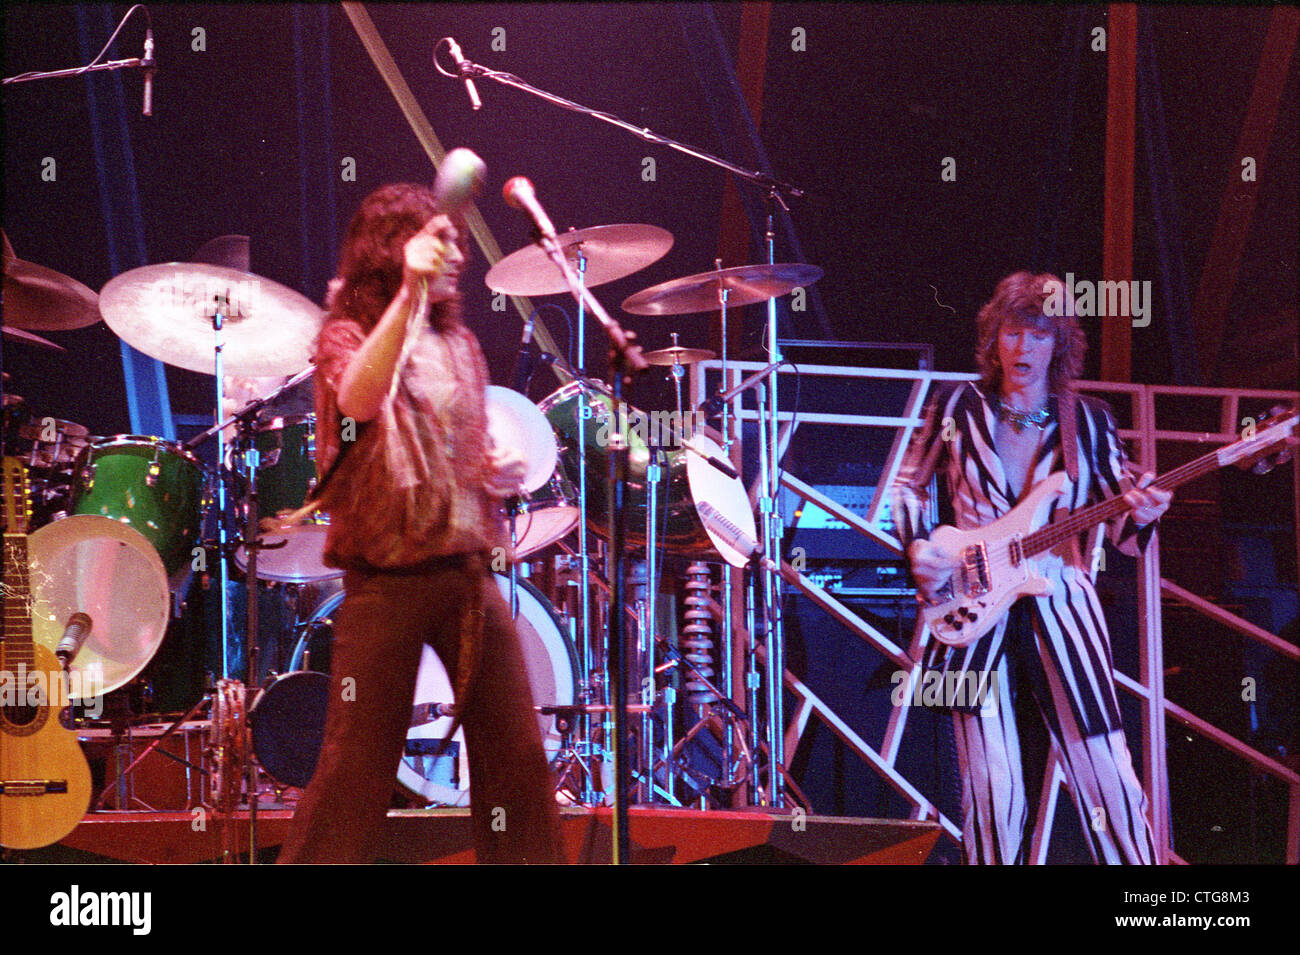 010693 - Jon Anderson and Chris Squire of Yes in concert in the 1970s - Stock Image